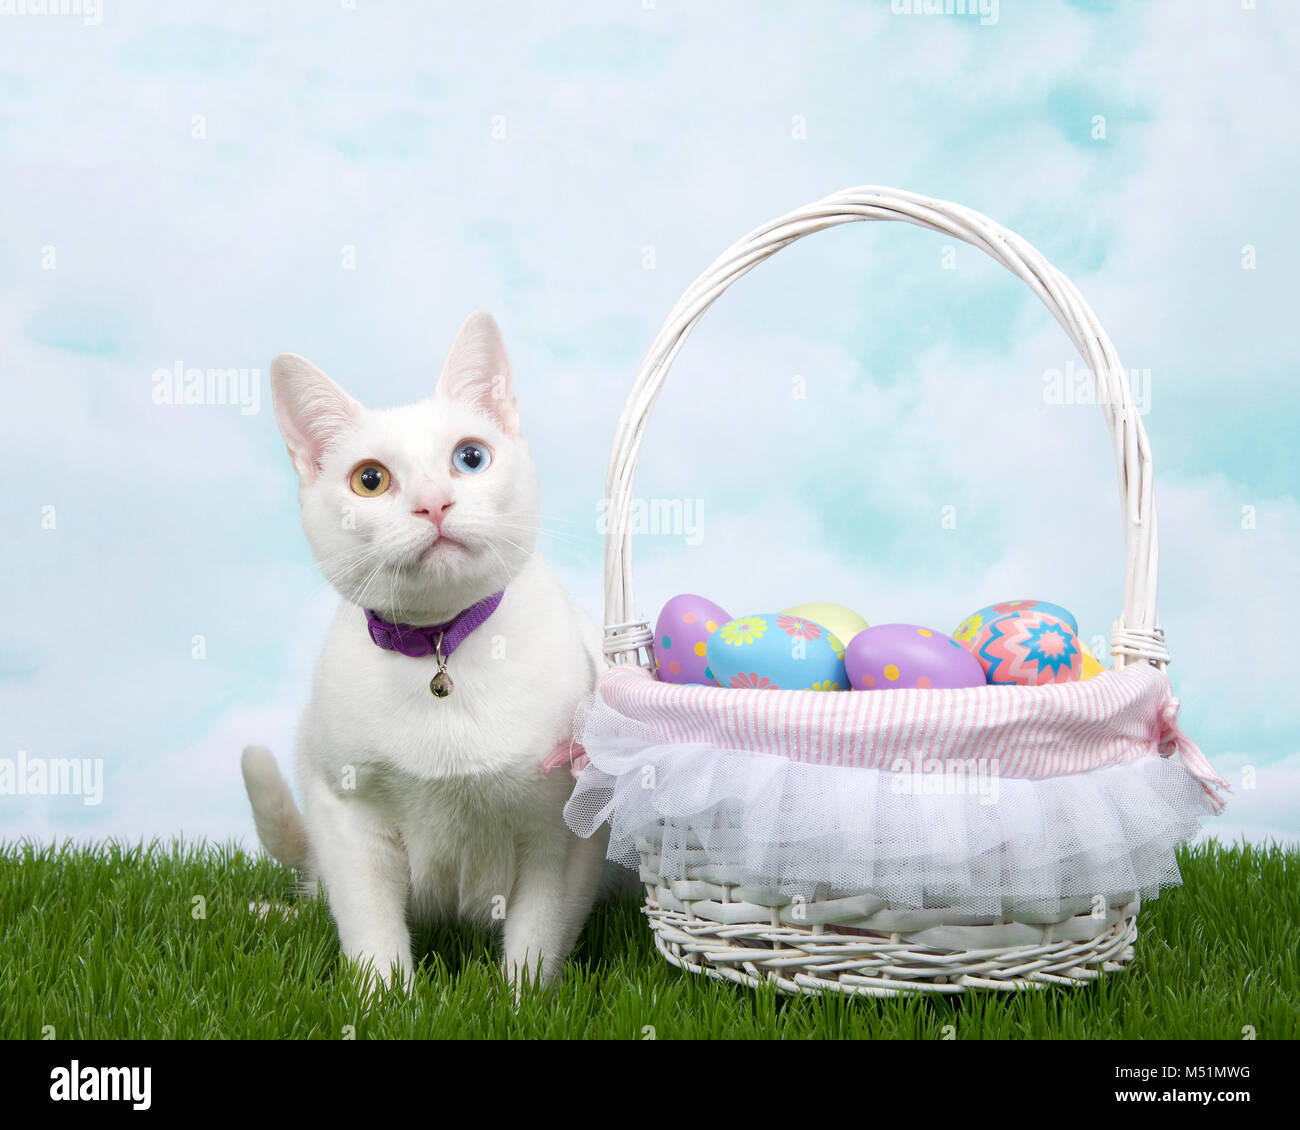 White kitten with heterochromia wearing a purple collar with bell crouched in green grass next to white basket full - Stock Image